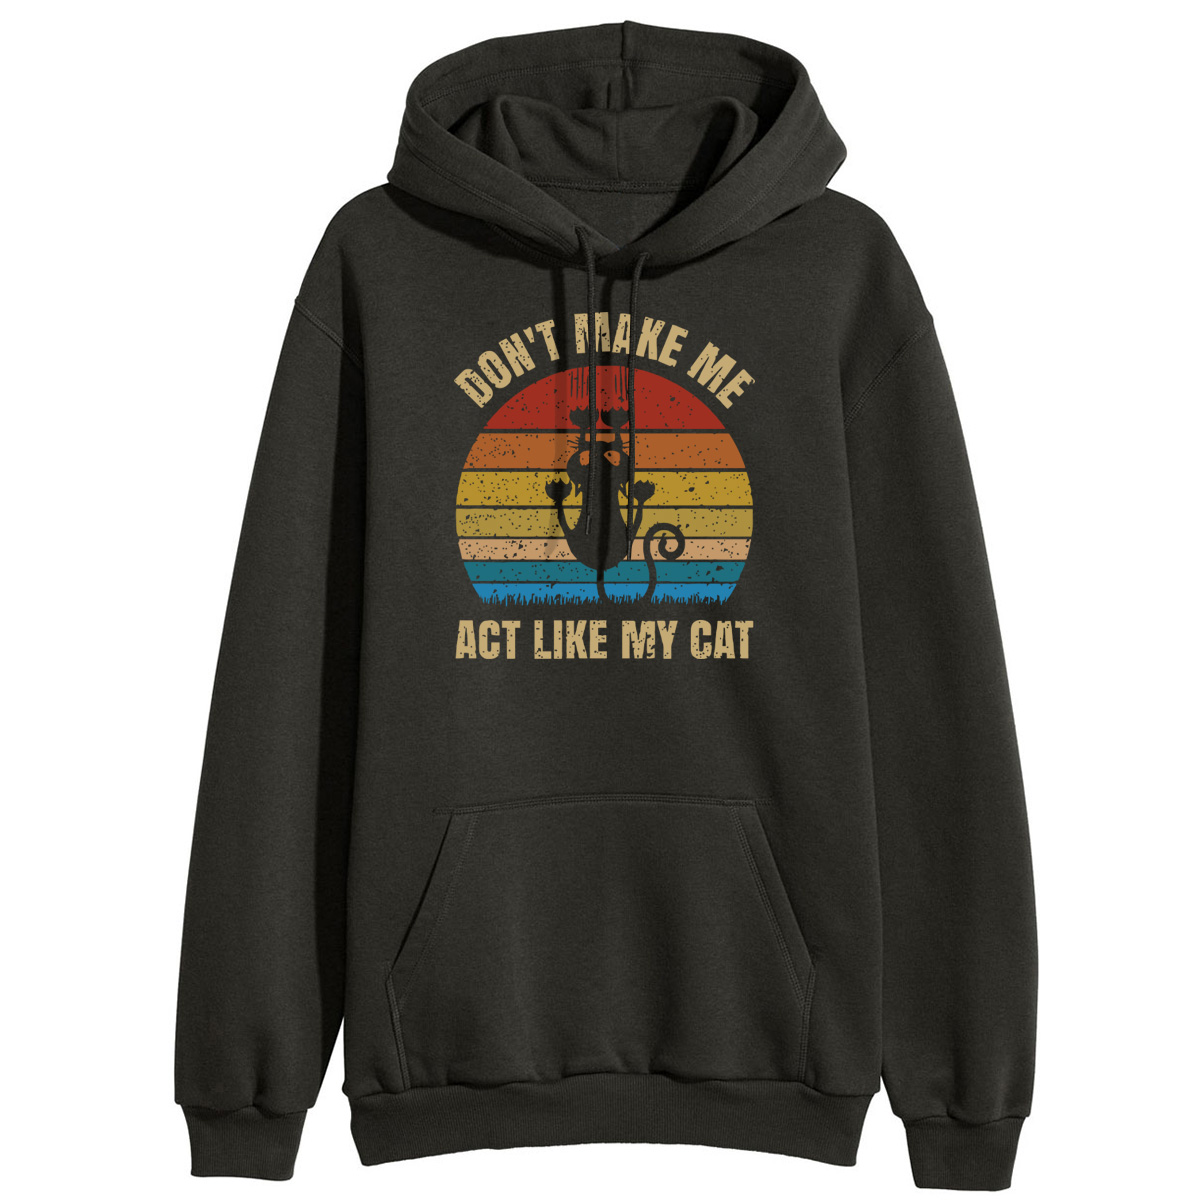 Don't Make Me Act Like My Cat Letter Hoodies Women Vintage Sweatshirts Hoodie 2019 Winter Fleece Hooded Pullover Tracksuits Lady